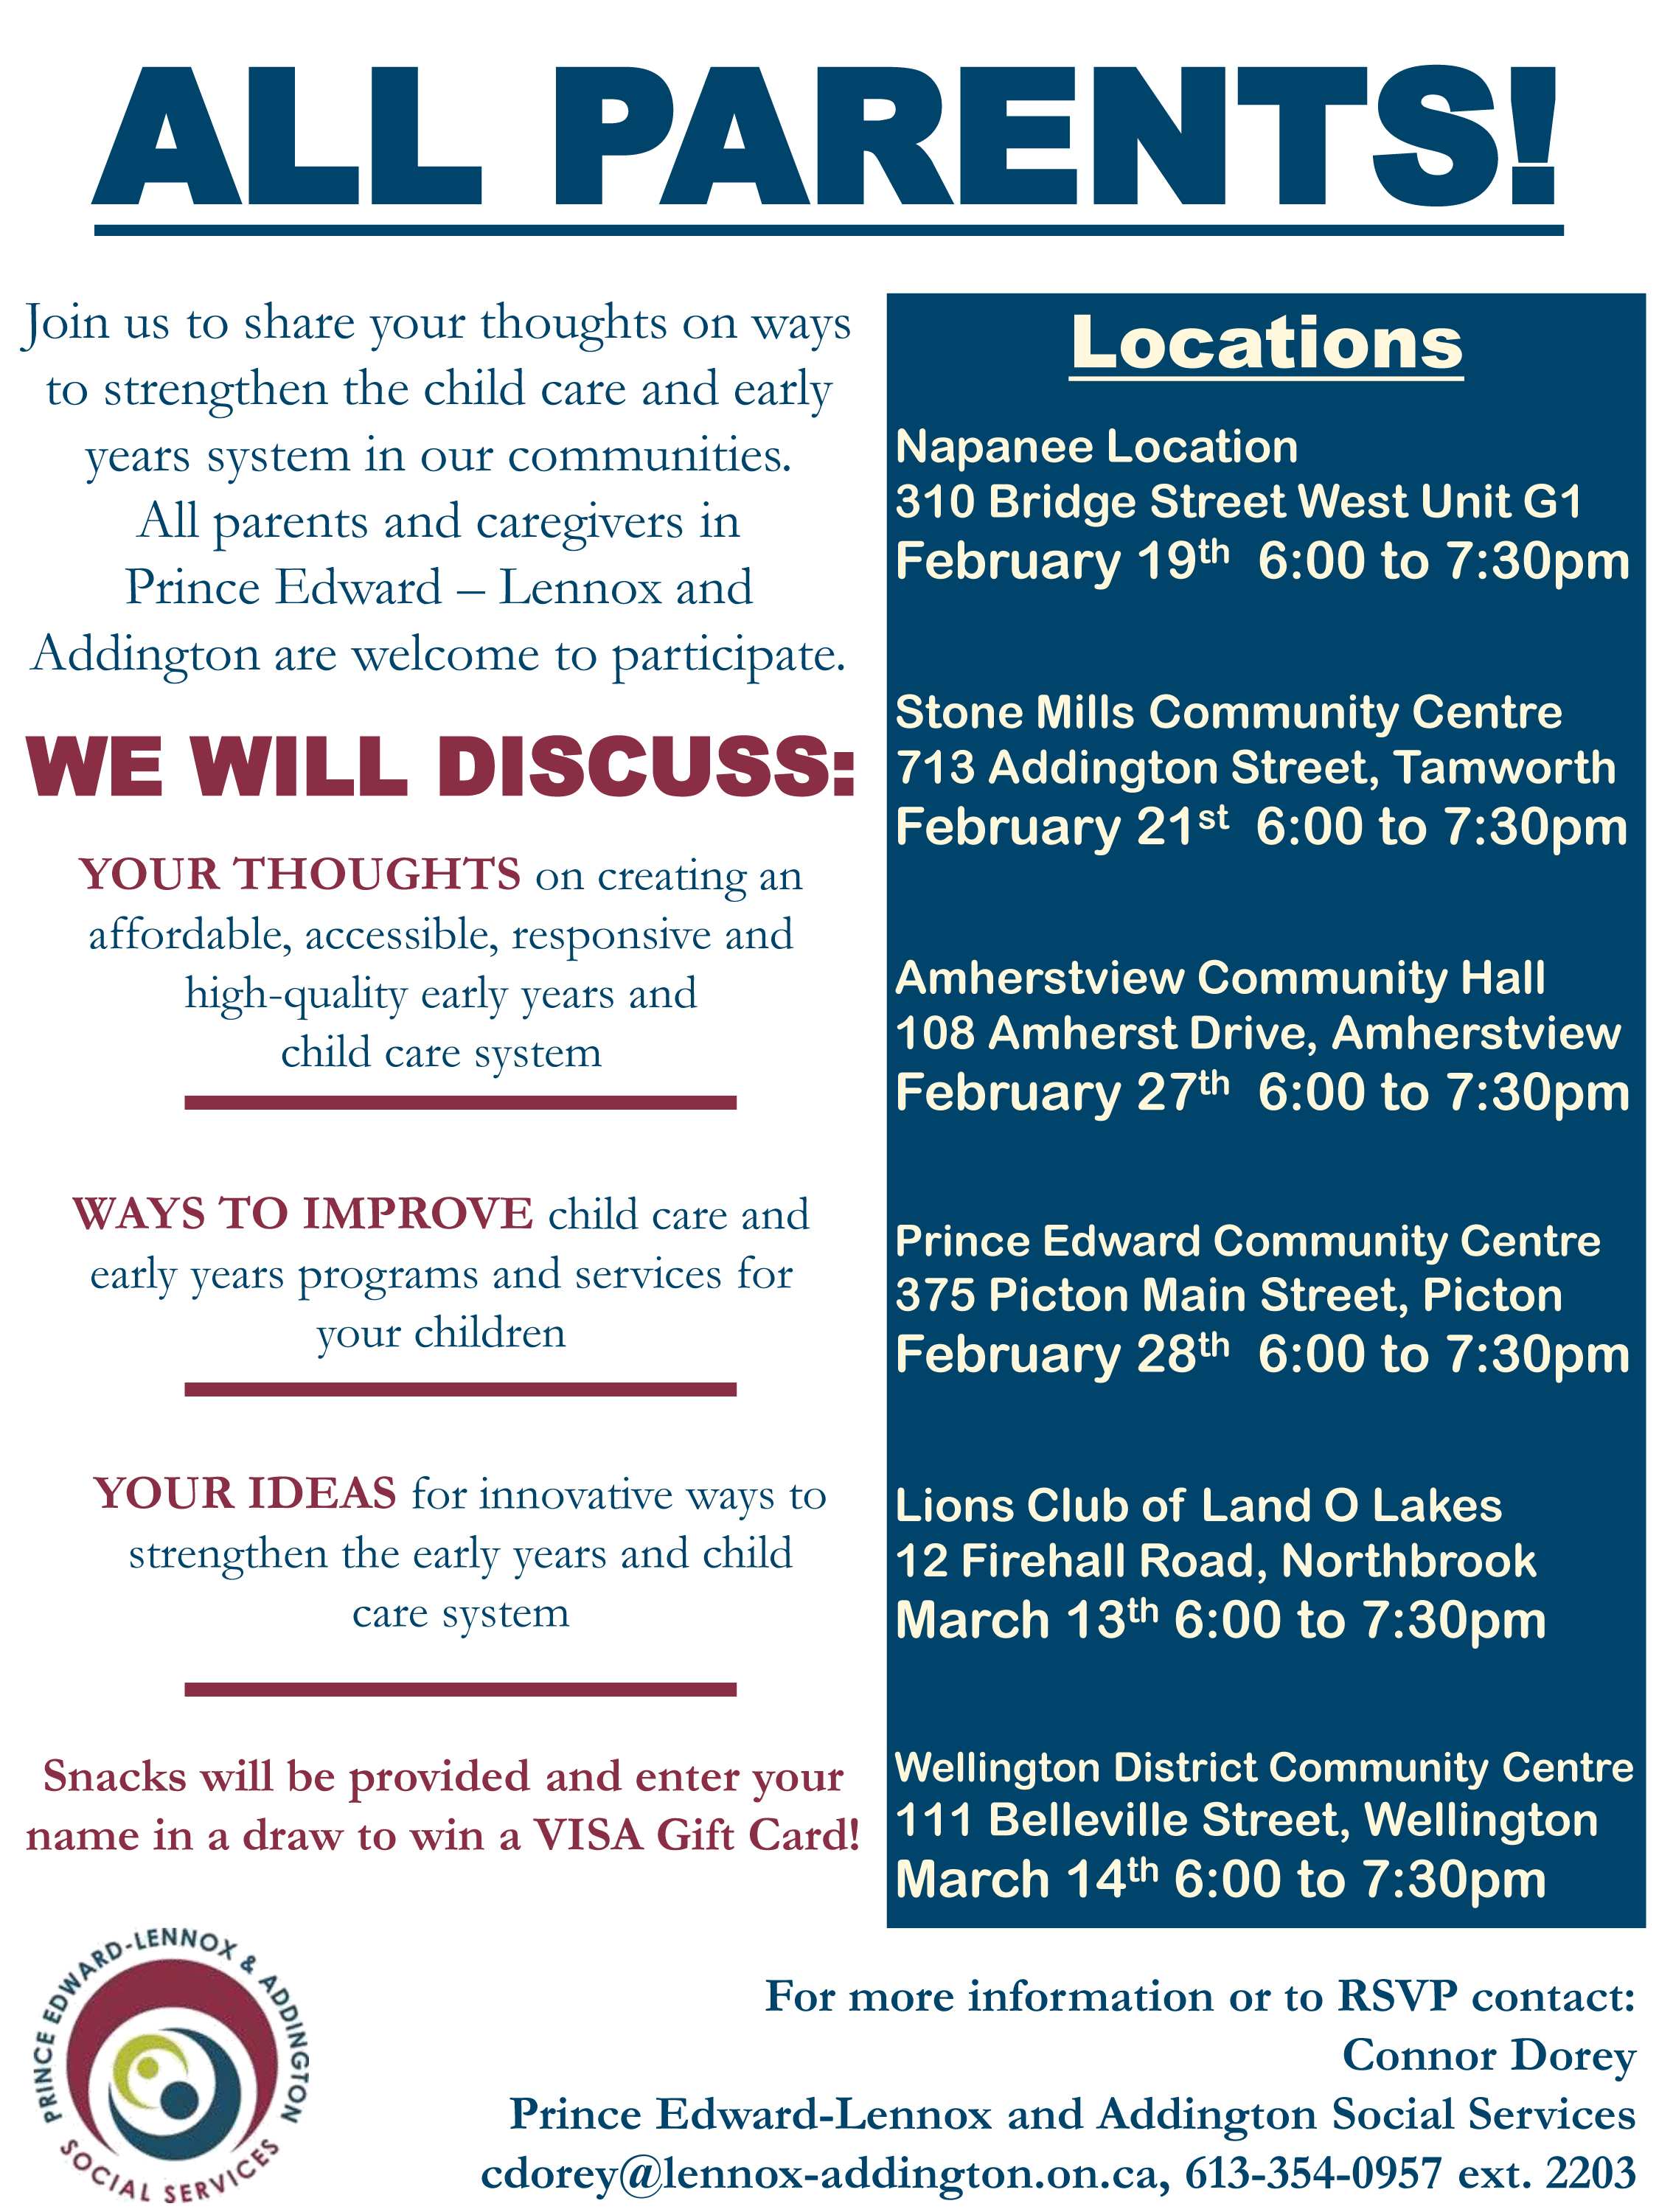 Join us to share your thoughts on ways to strengthen the child care and early years system in our communities